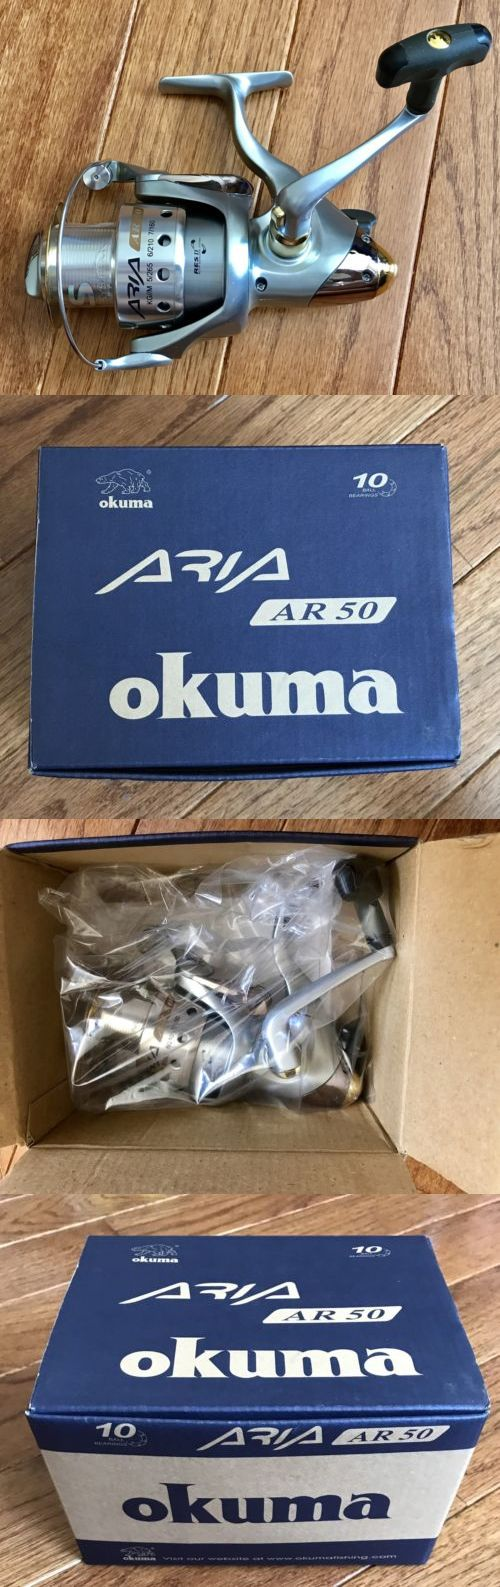 Spinning Reels 36147: New Okuma Aria Ar50 Spinning Reel With Okuma Reel Bag, Box And Papers Free-Ship! -> BUY IT NOW ONLY: $69.99 on eBay!